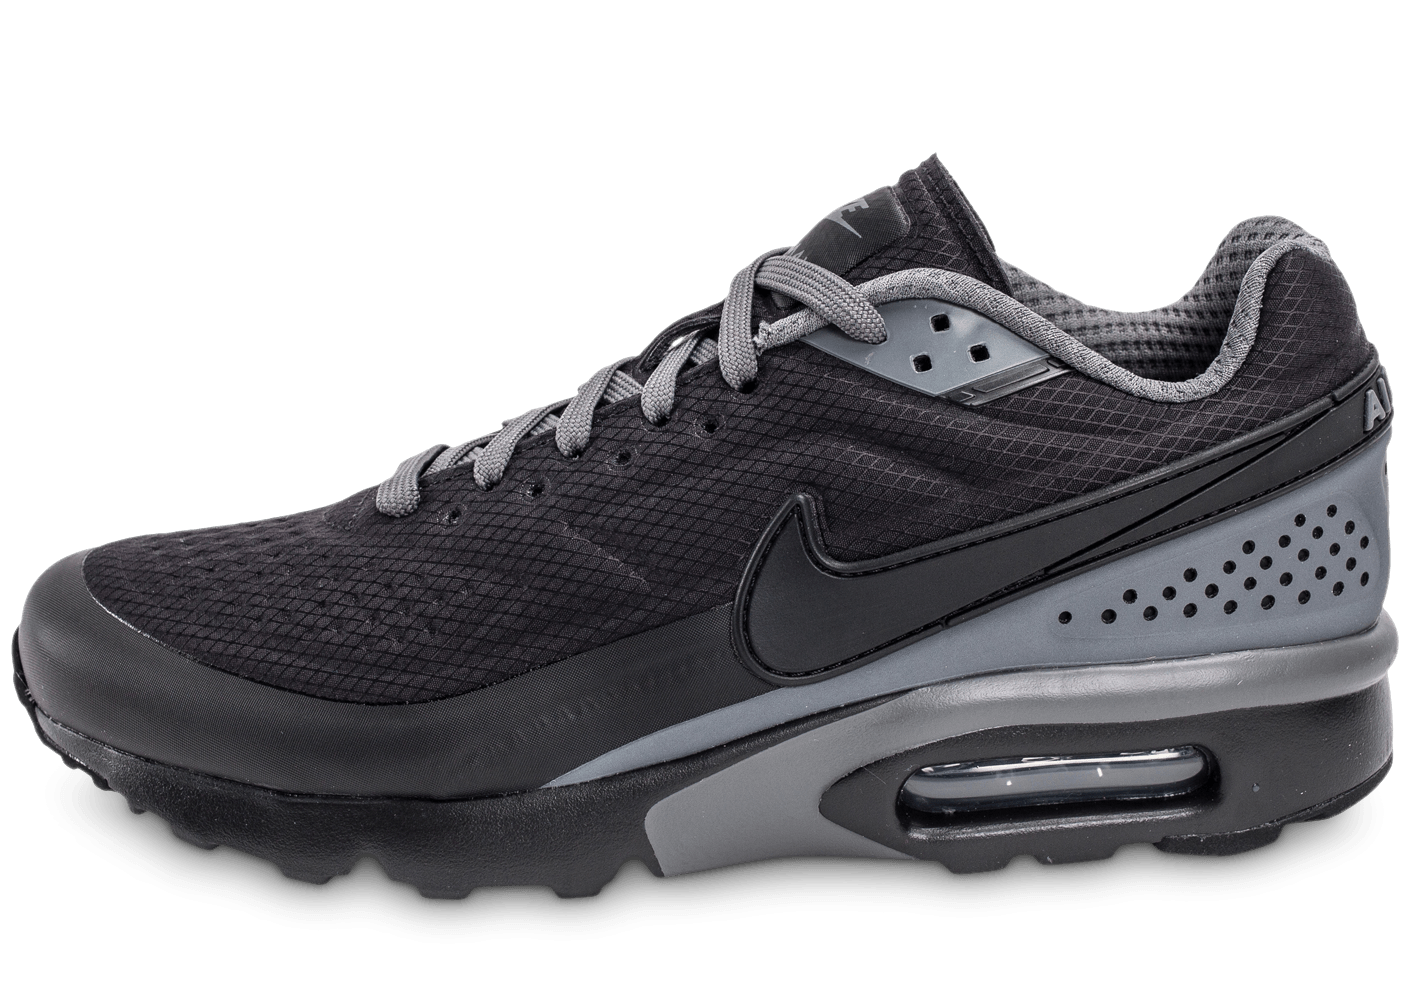 best authentic 086a5 fb4da Nike Air Max BW Ultra SE noire - Chaussures Baskets homme - Chausport